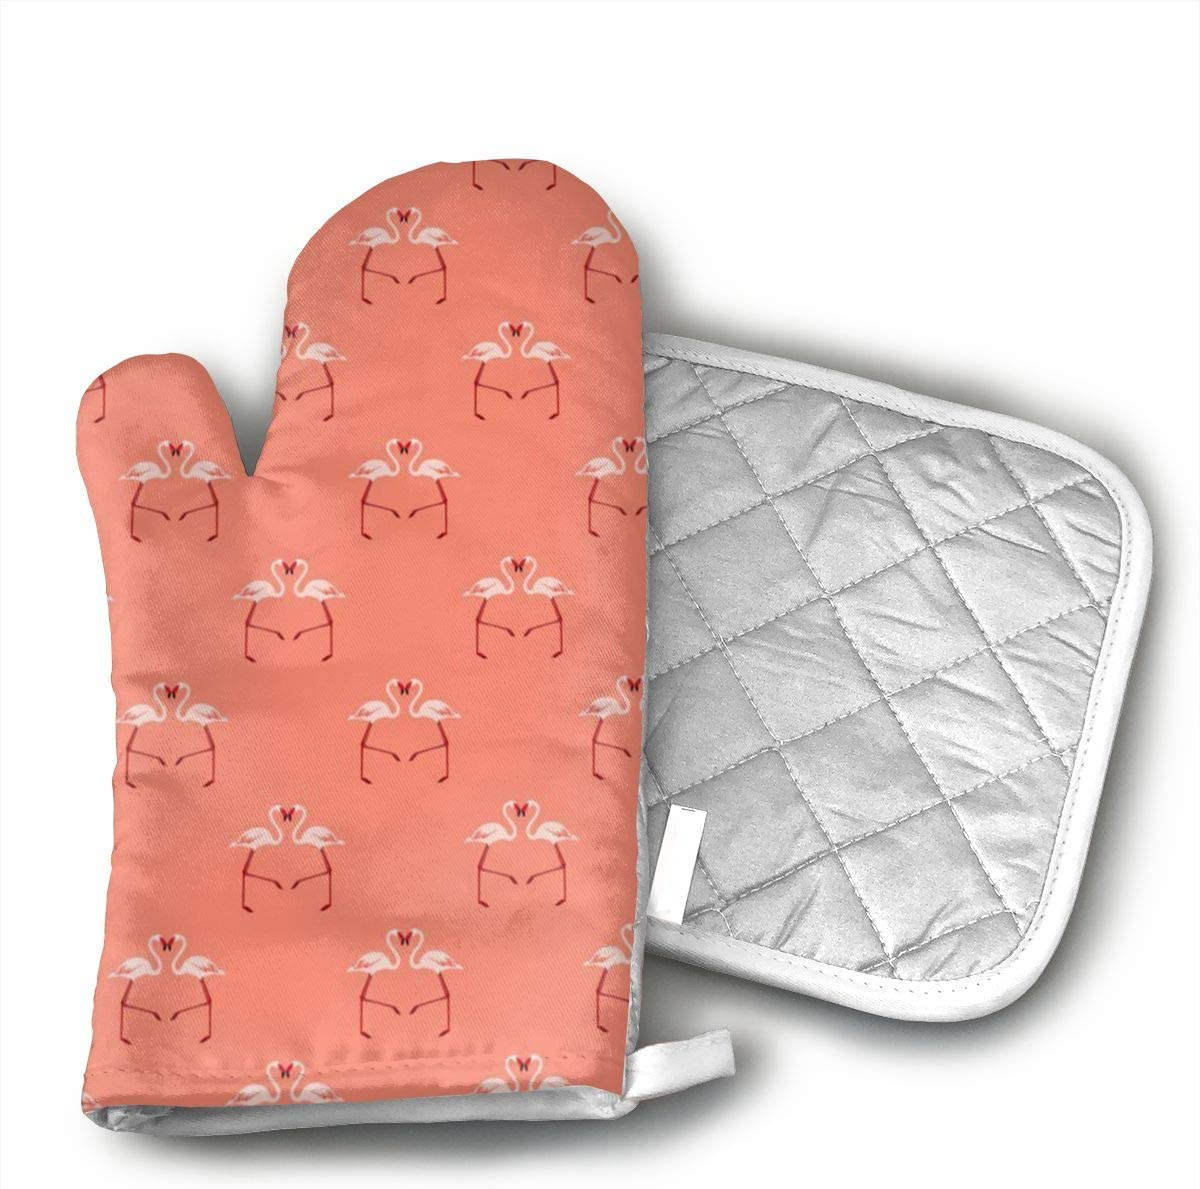 YYYNN Pink Flamingoes On Coral Oven mitt Cotton Pot Rack Non-Slip for Kitchen Grill Machine Cooking Baking Grill